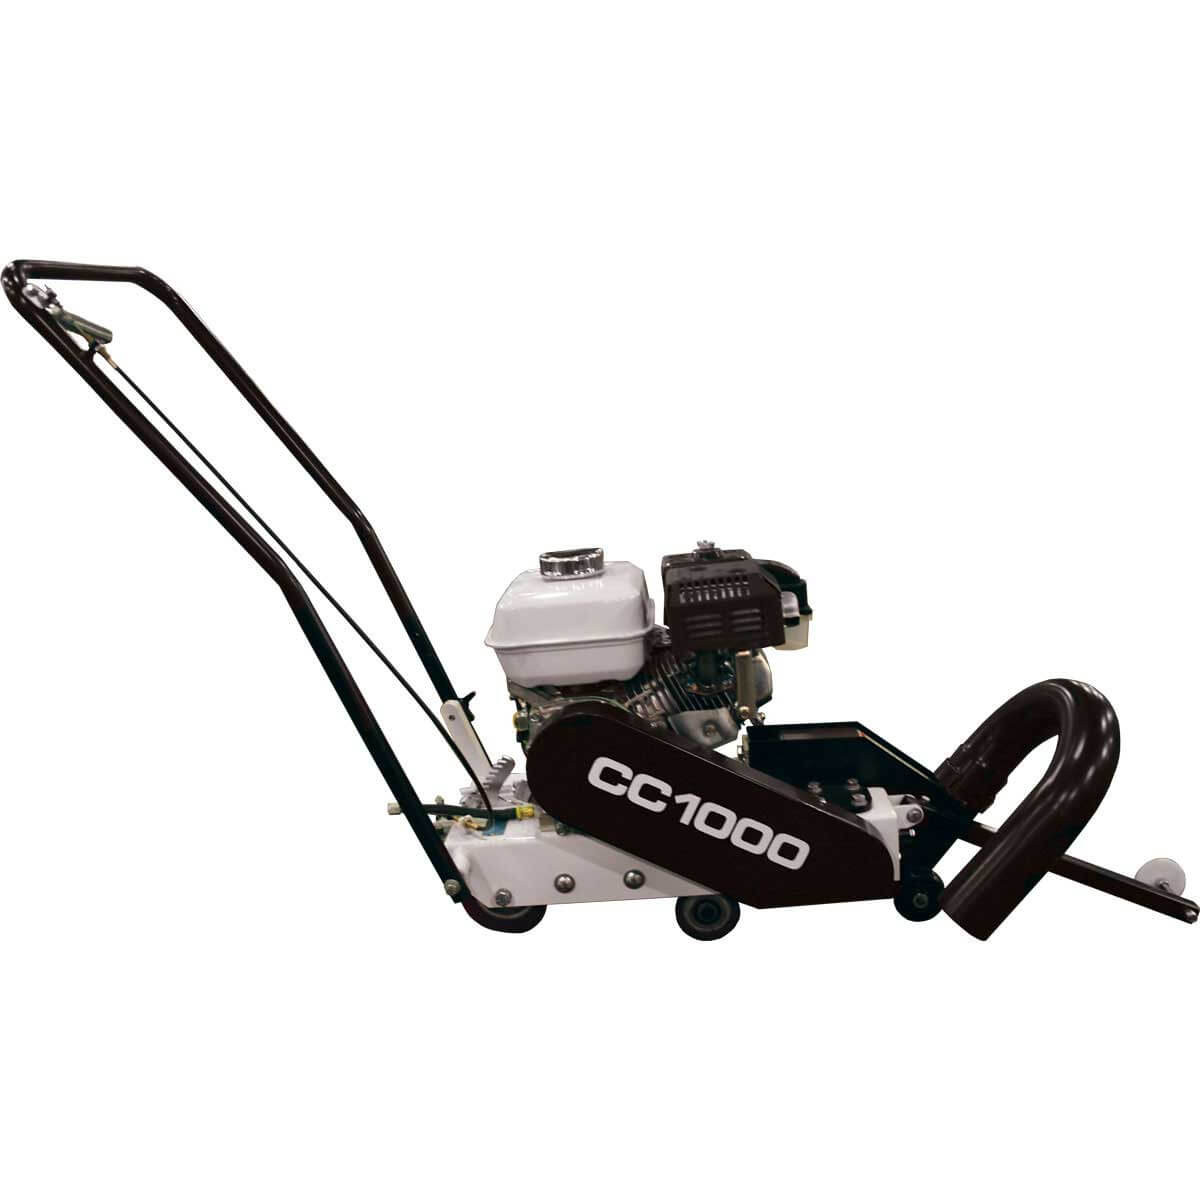 Core Cut CC1000 green Concrete Saw